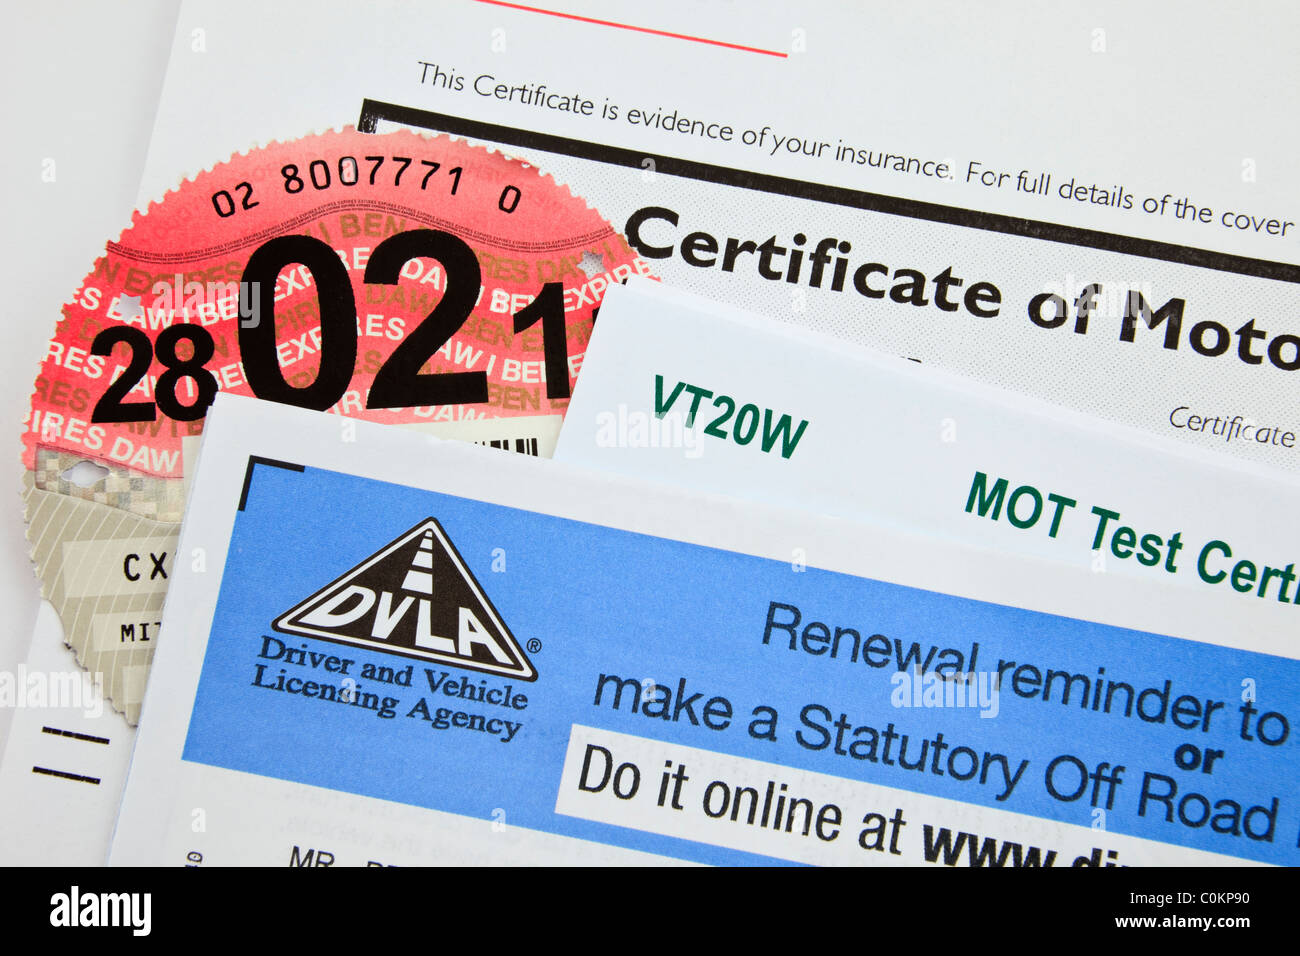 Mot test certificate stock photos mot test certificate stock dvla renewal reminder form for renewing road tax disc with motor insurance 1betcityfo Image collections